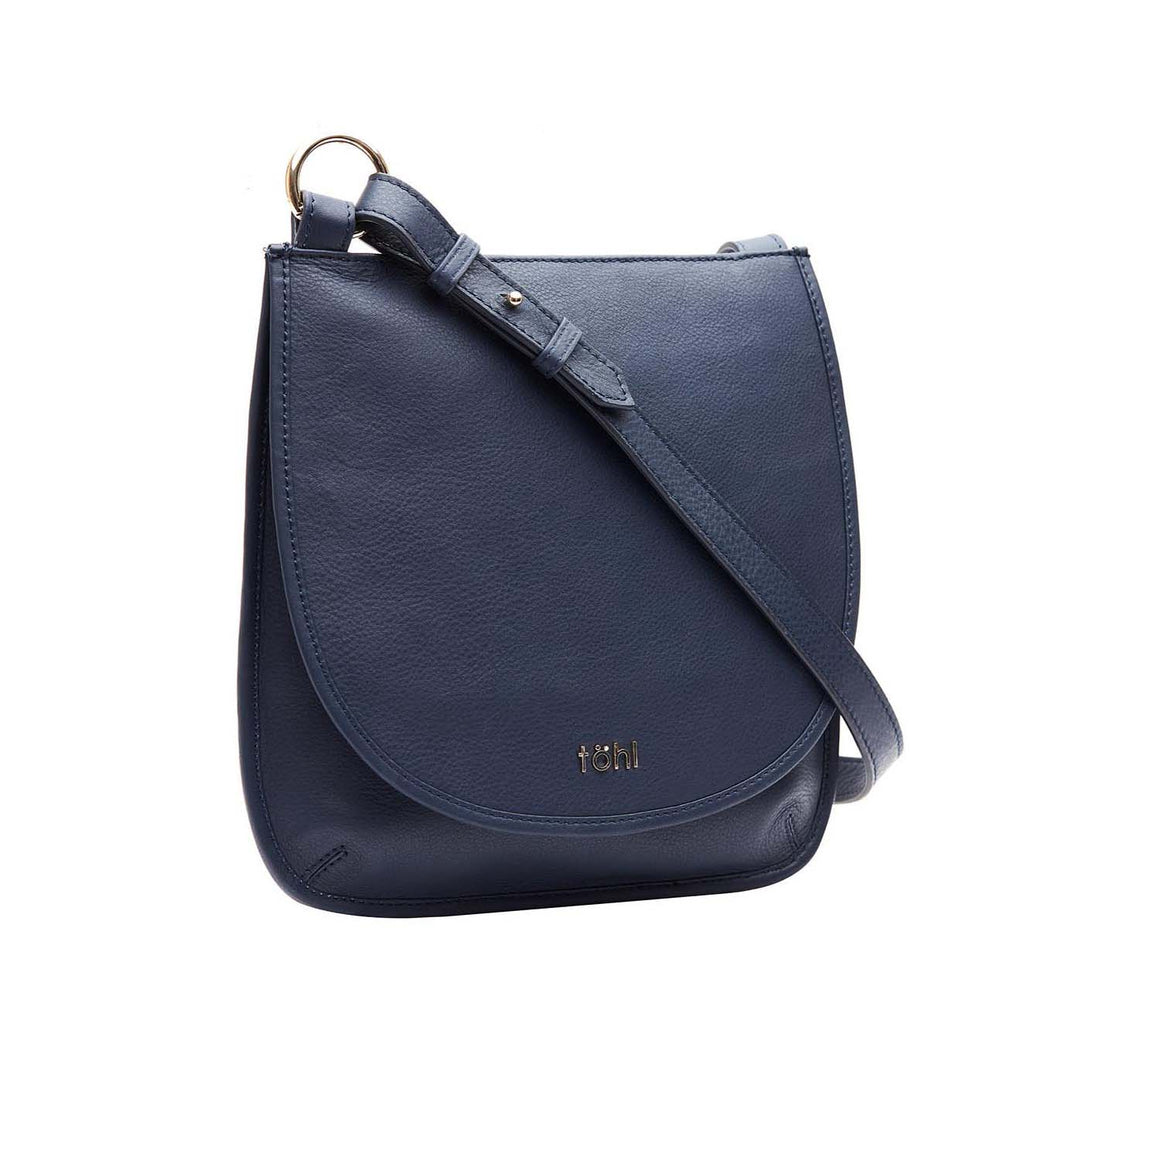 SG 0027 - TOHL LEITH WOMEN'S SLING & CROSSBODY BAG - INDIGO BLUE